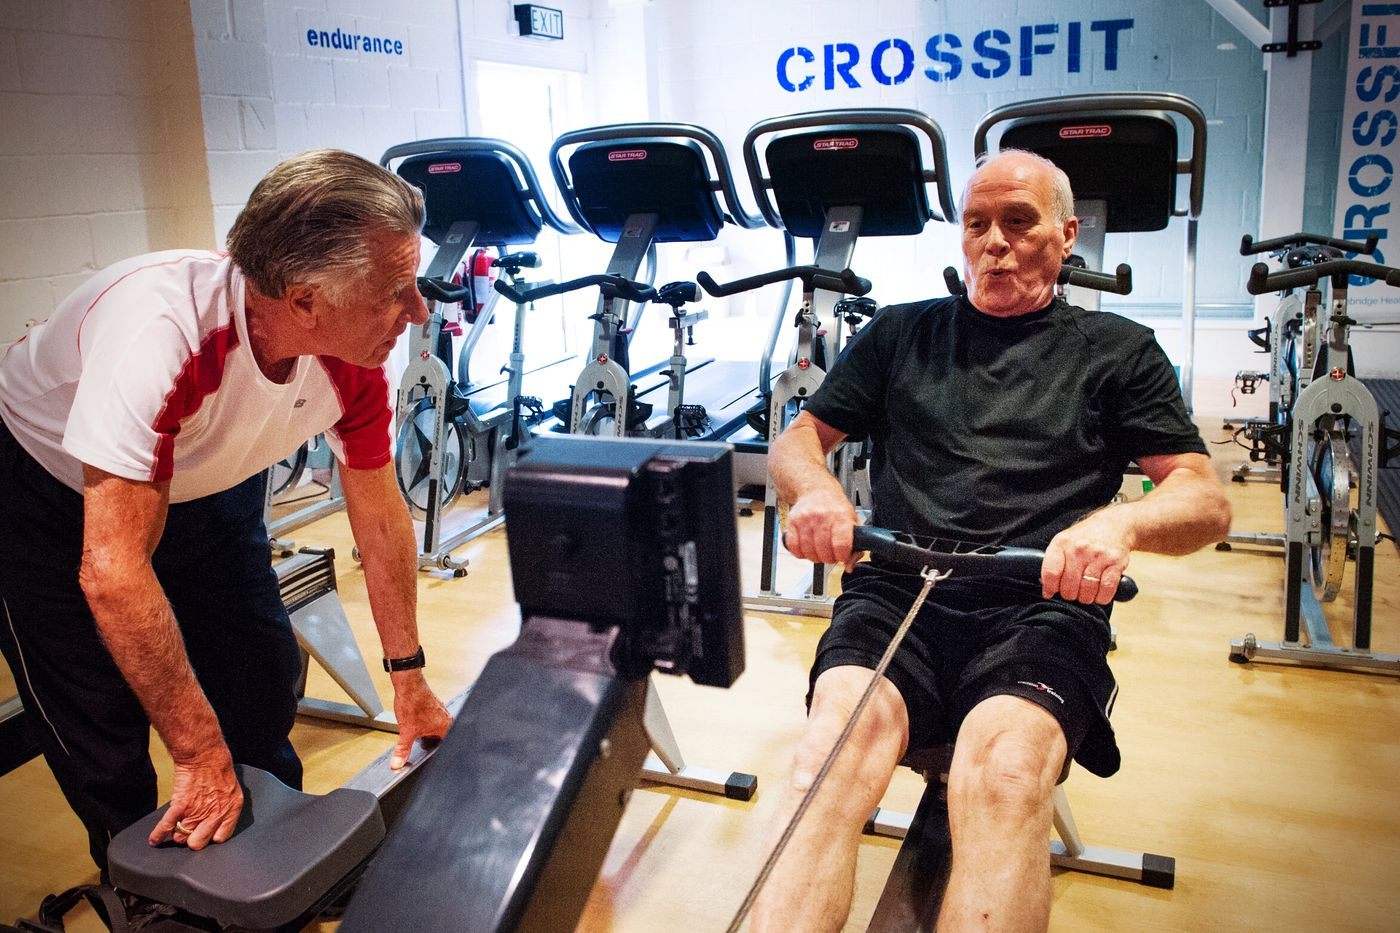 CrossFit's founder Greg Glassman is amassing a doctor army